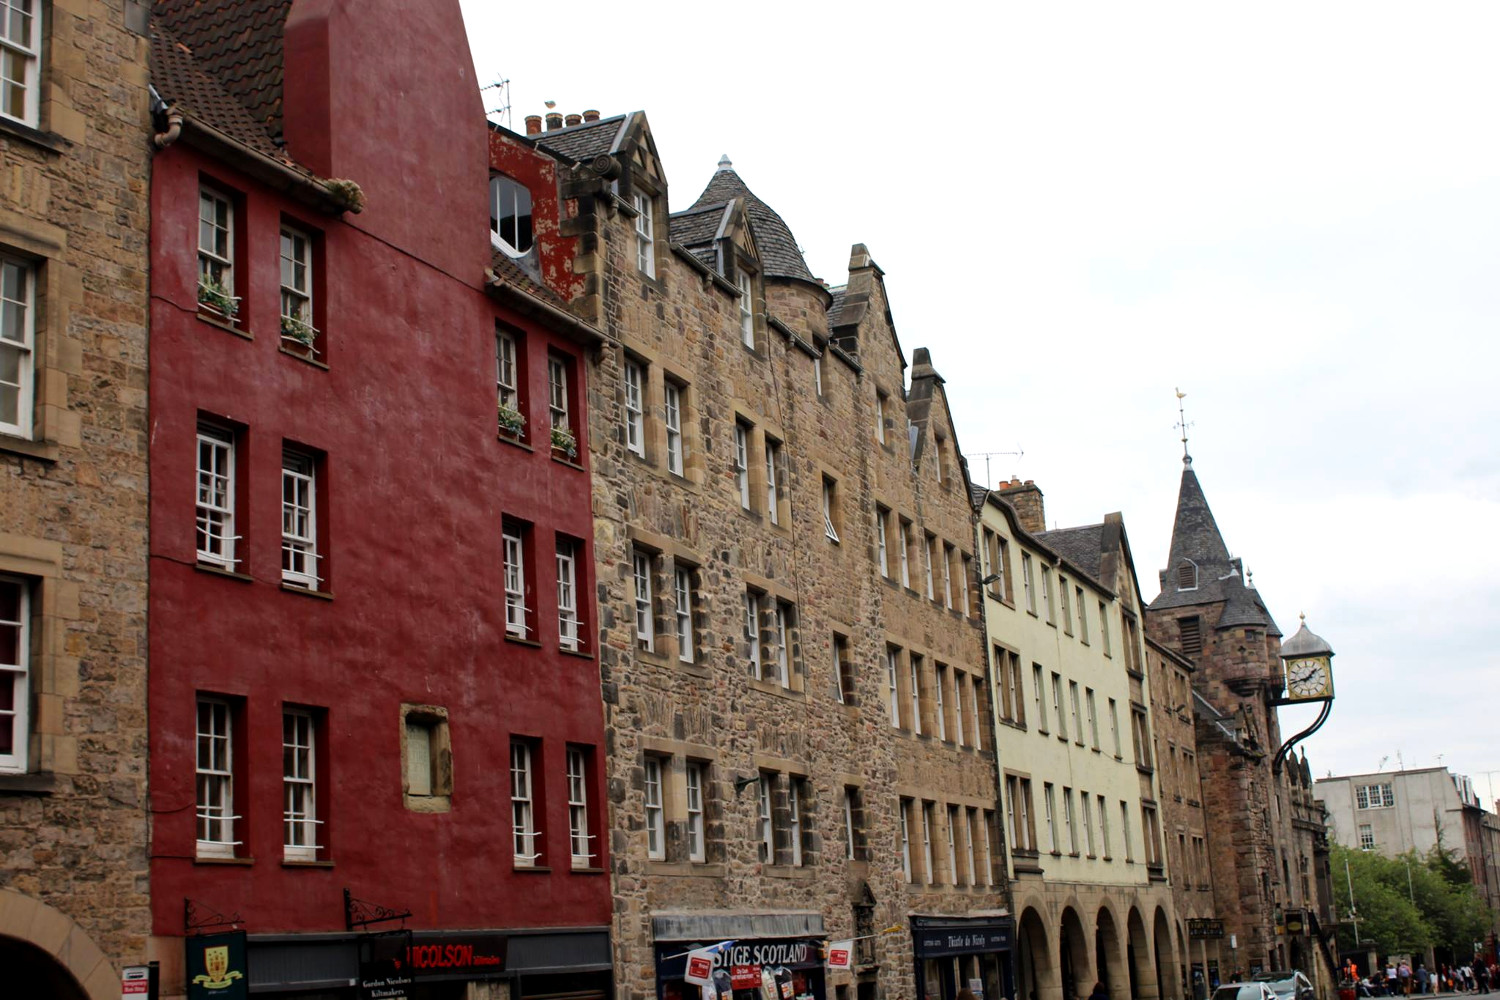 The Royal Mile, one of the top Edinburgh tourist attractions